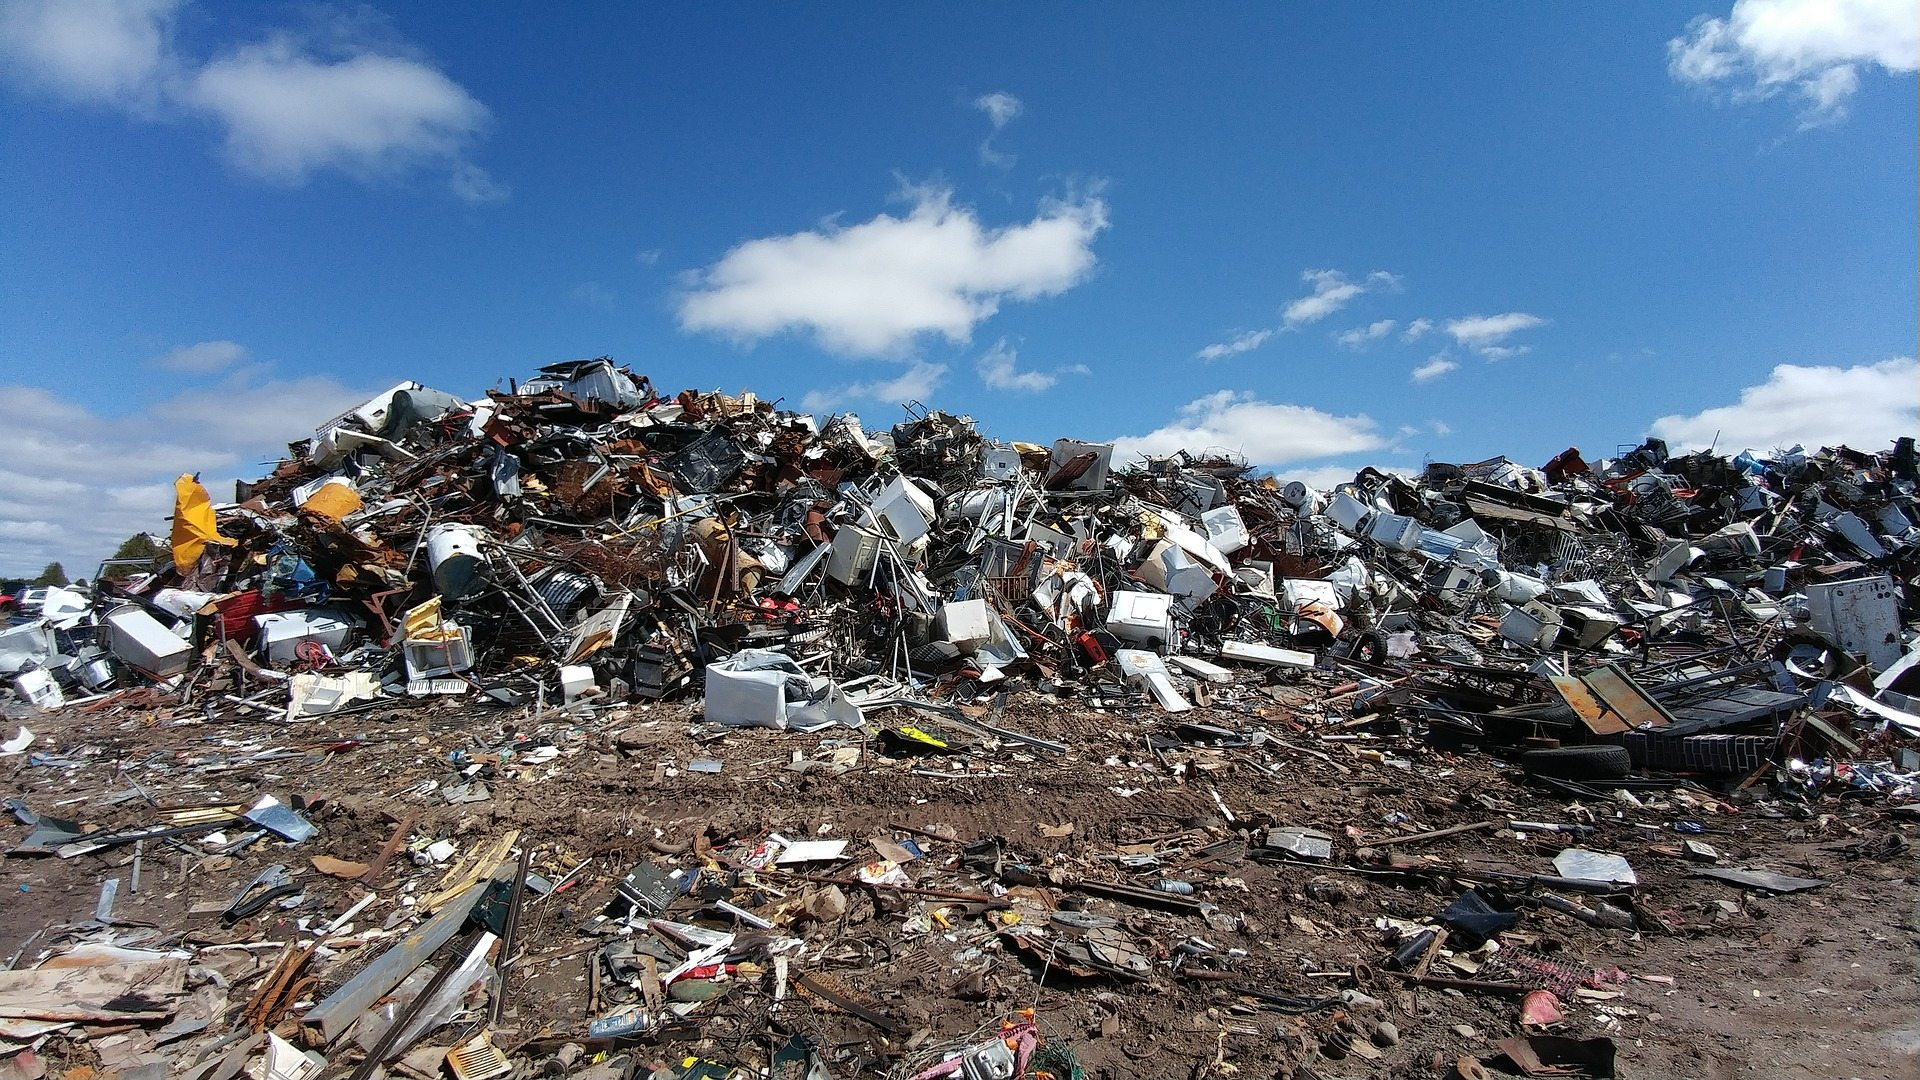 Image: A giant Landfill